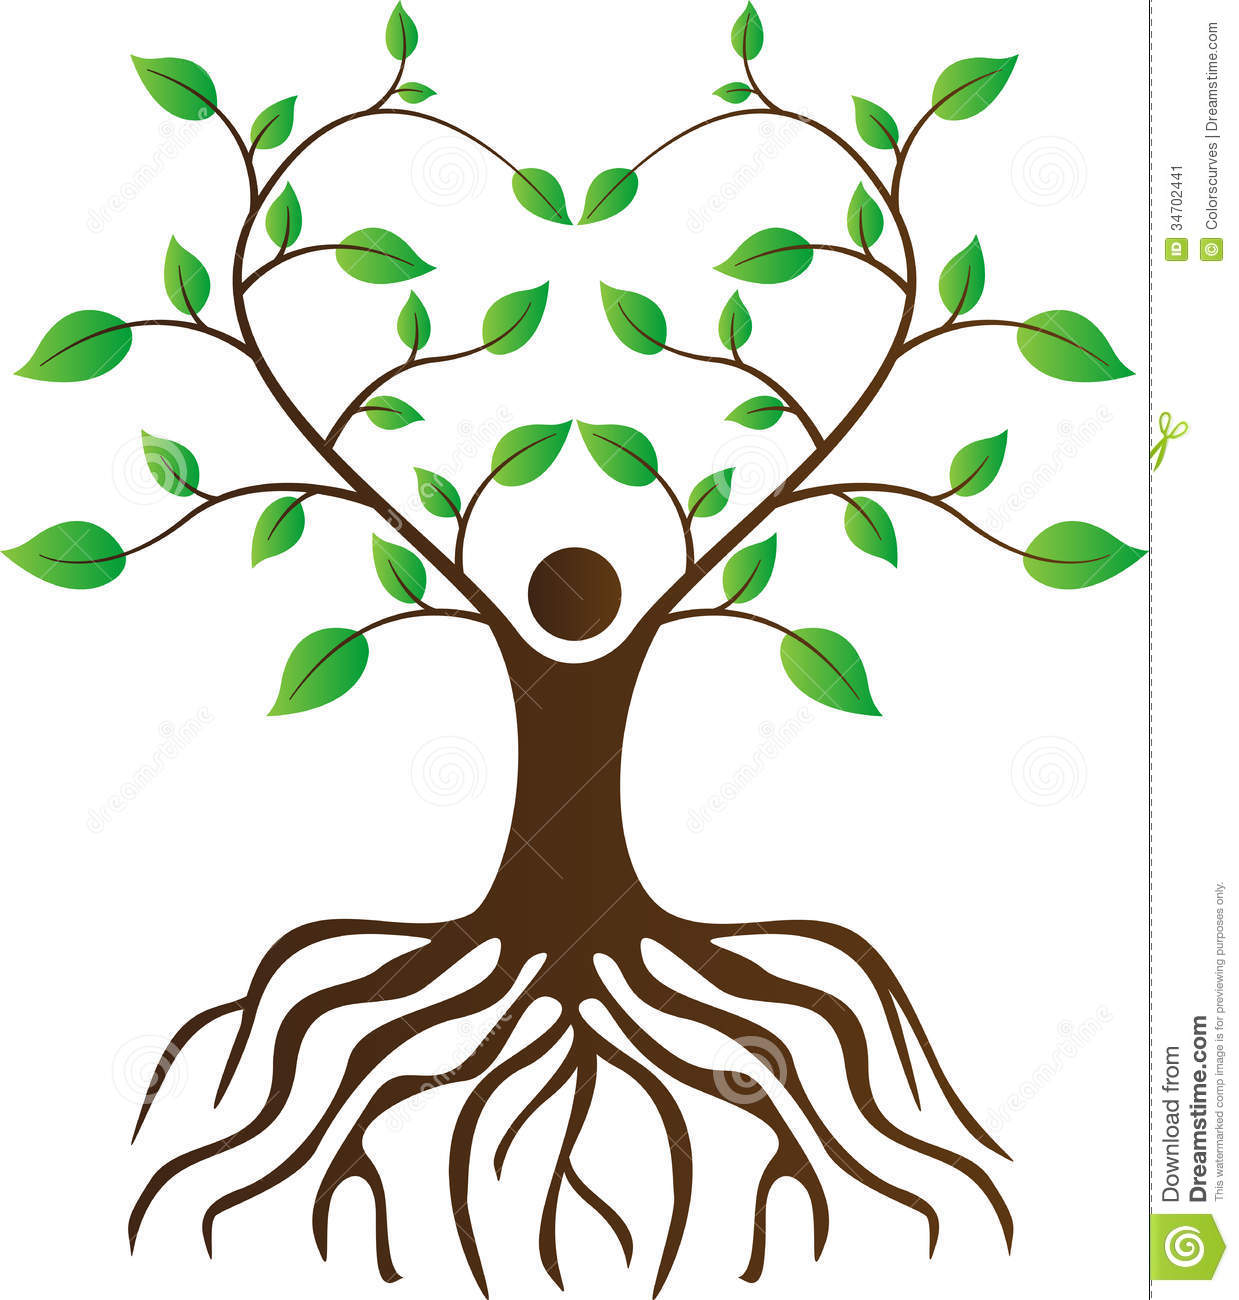 Clip Art Tree With Roots Clip - Tree Roots Clipart